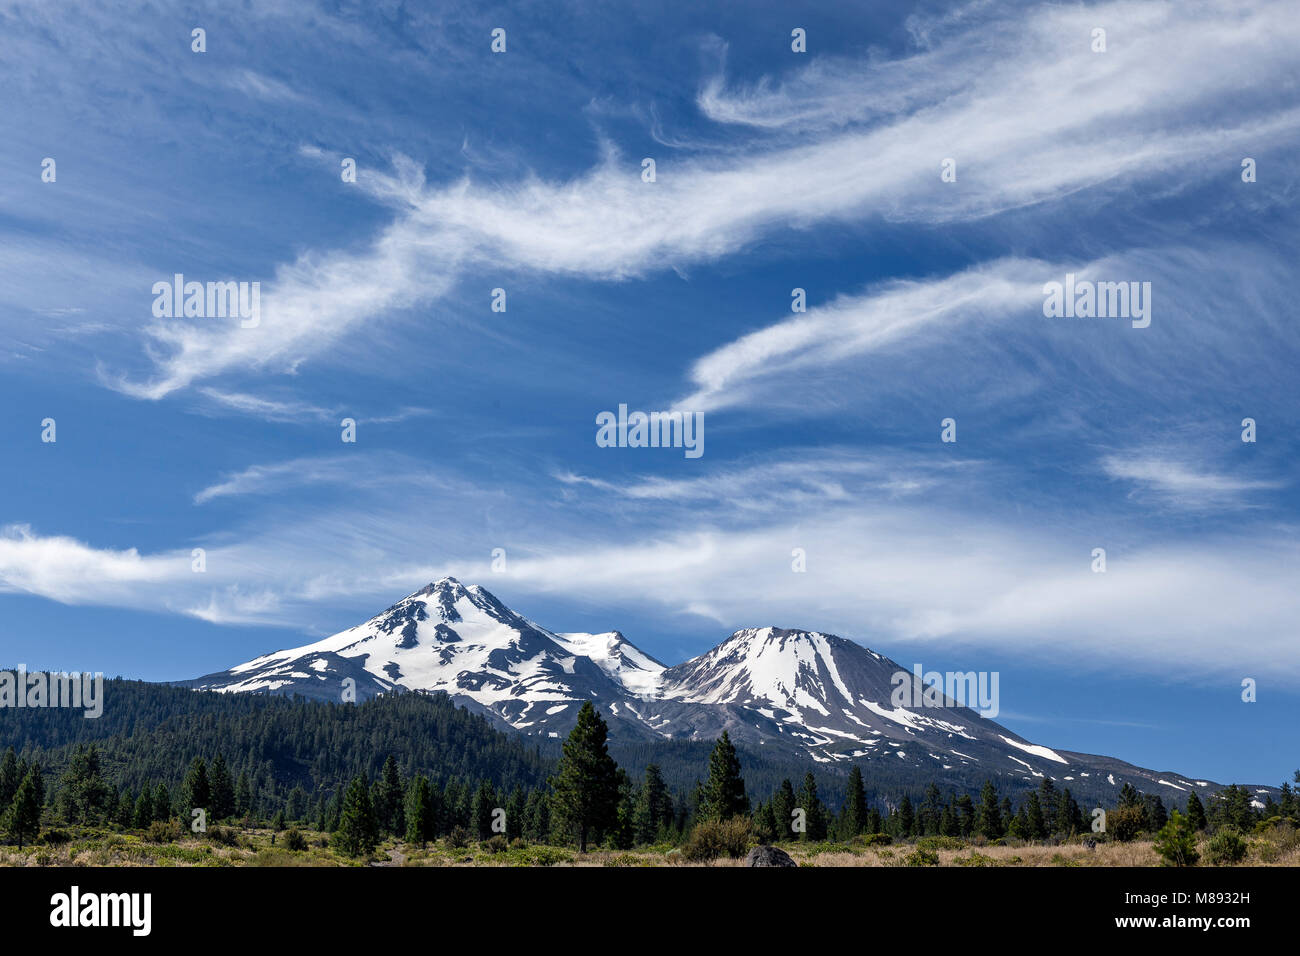 CA02862-00...CALIFORNIA - Mount Shasta viewed form Bolam Road in the Mount Shasta National Forest. - Stock Image